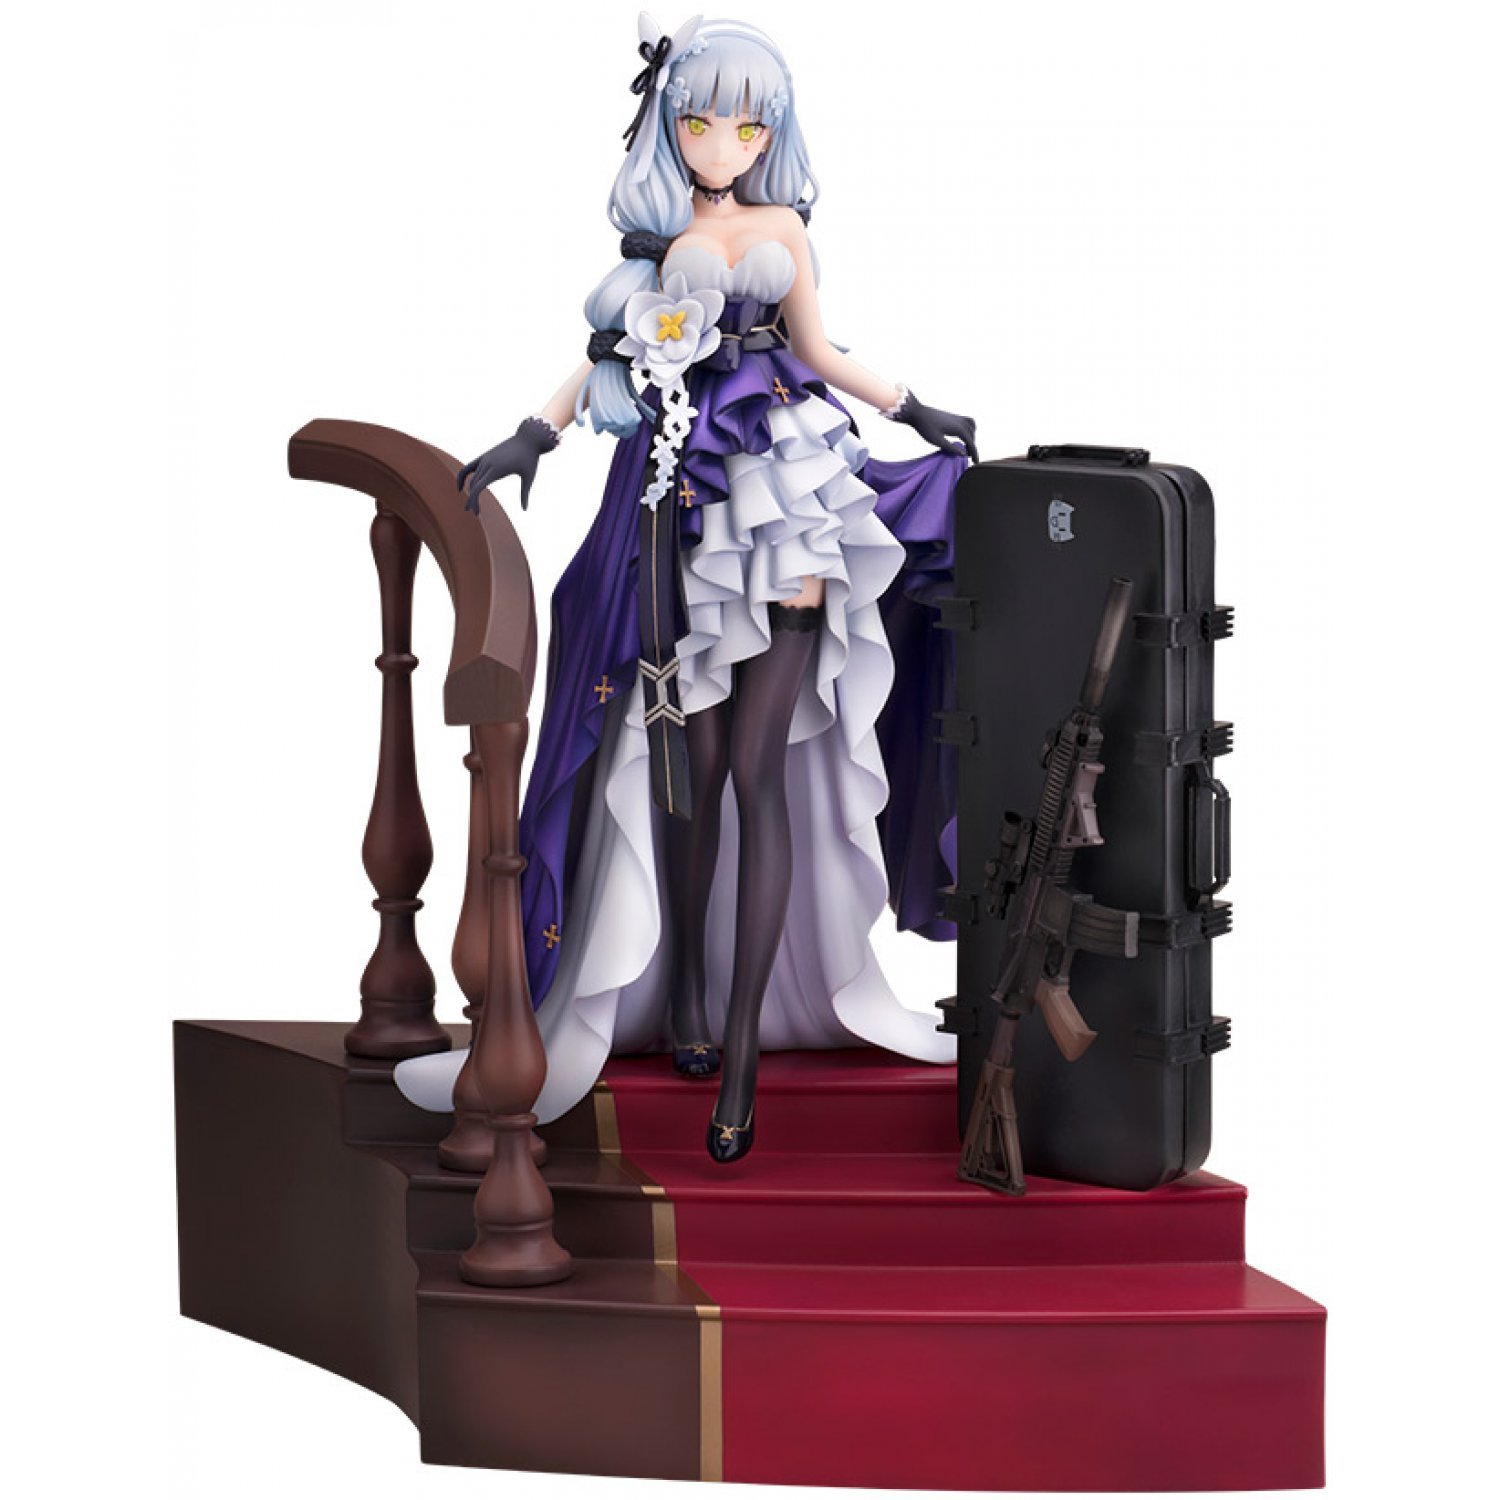 cceb7999fe Girls' Frontline 1/8 Scale Pre-Painted Figure: HK416 Star Cocoon Ver.